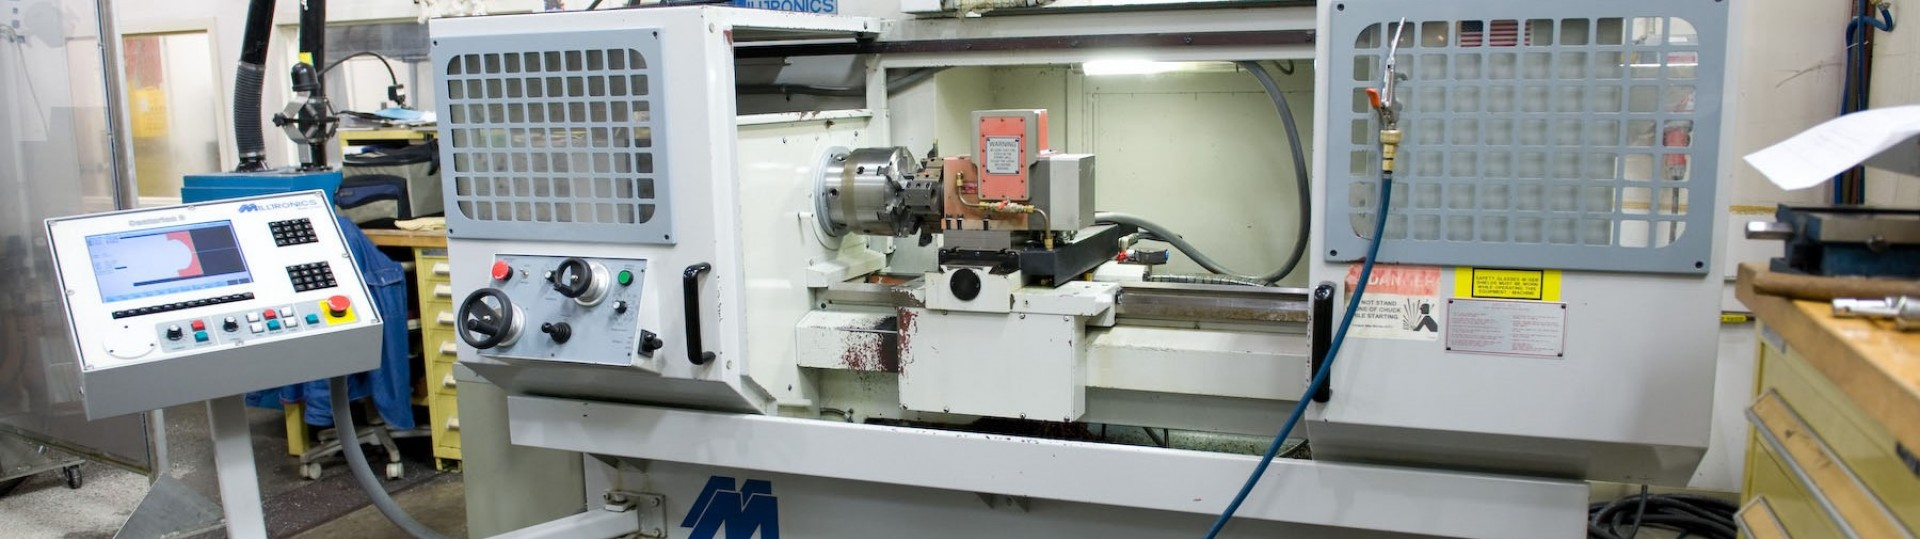 "Machine Shop 17"" CNC Lathe"